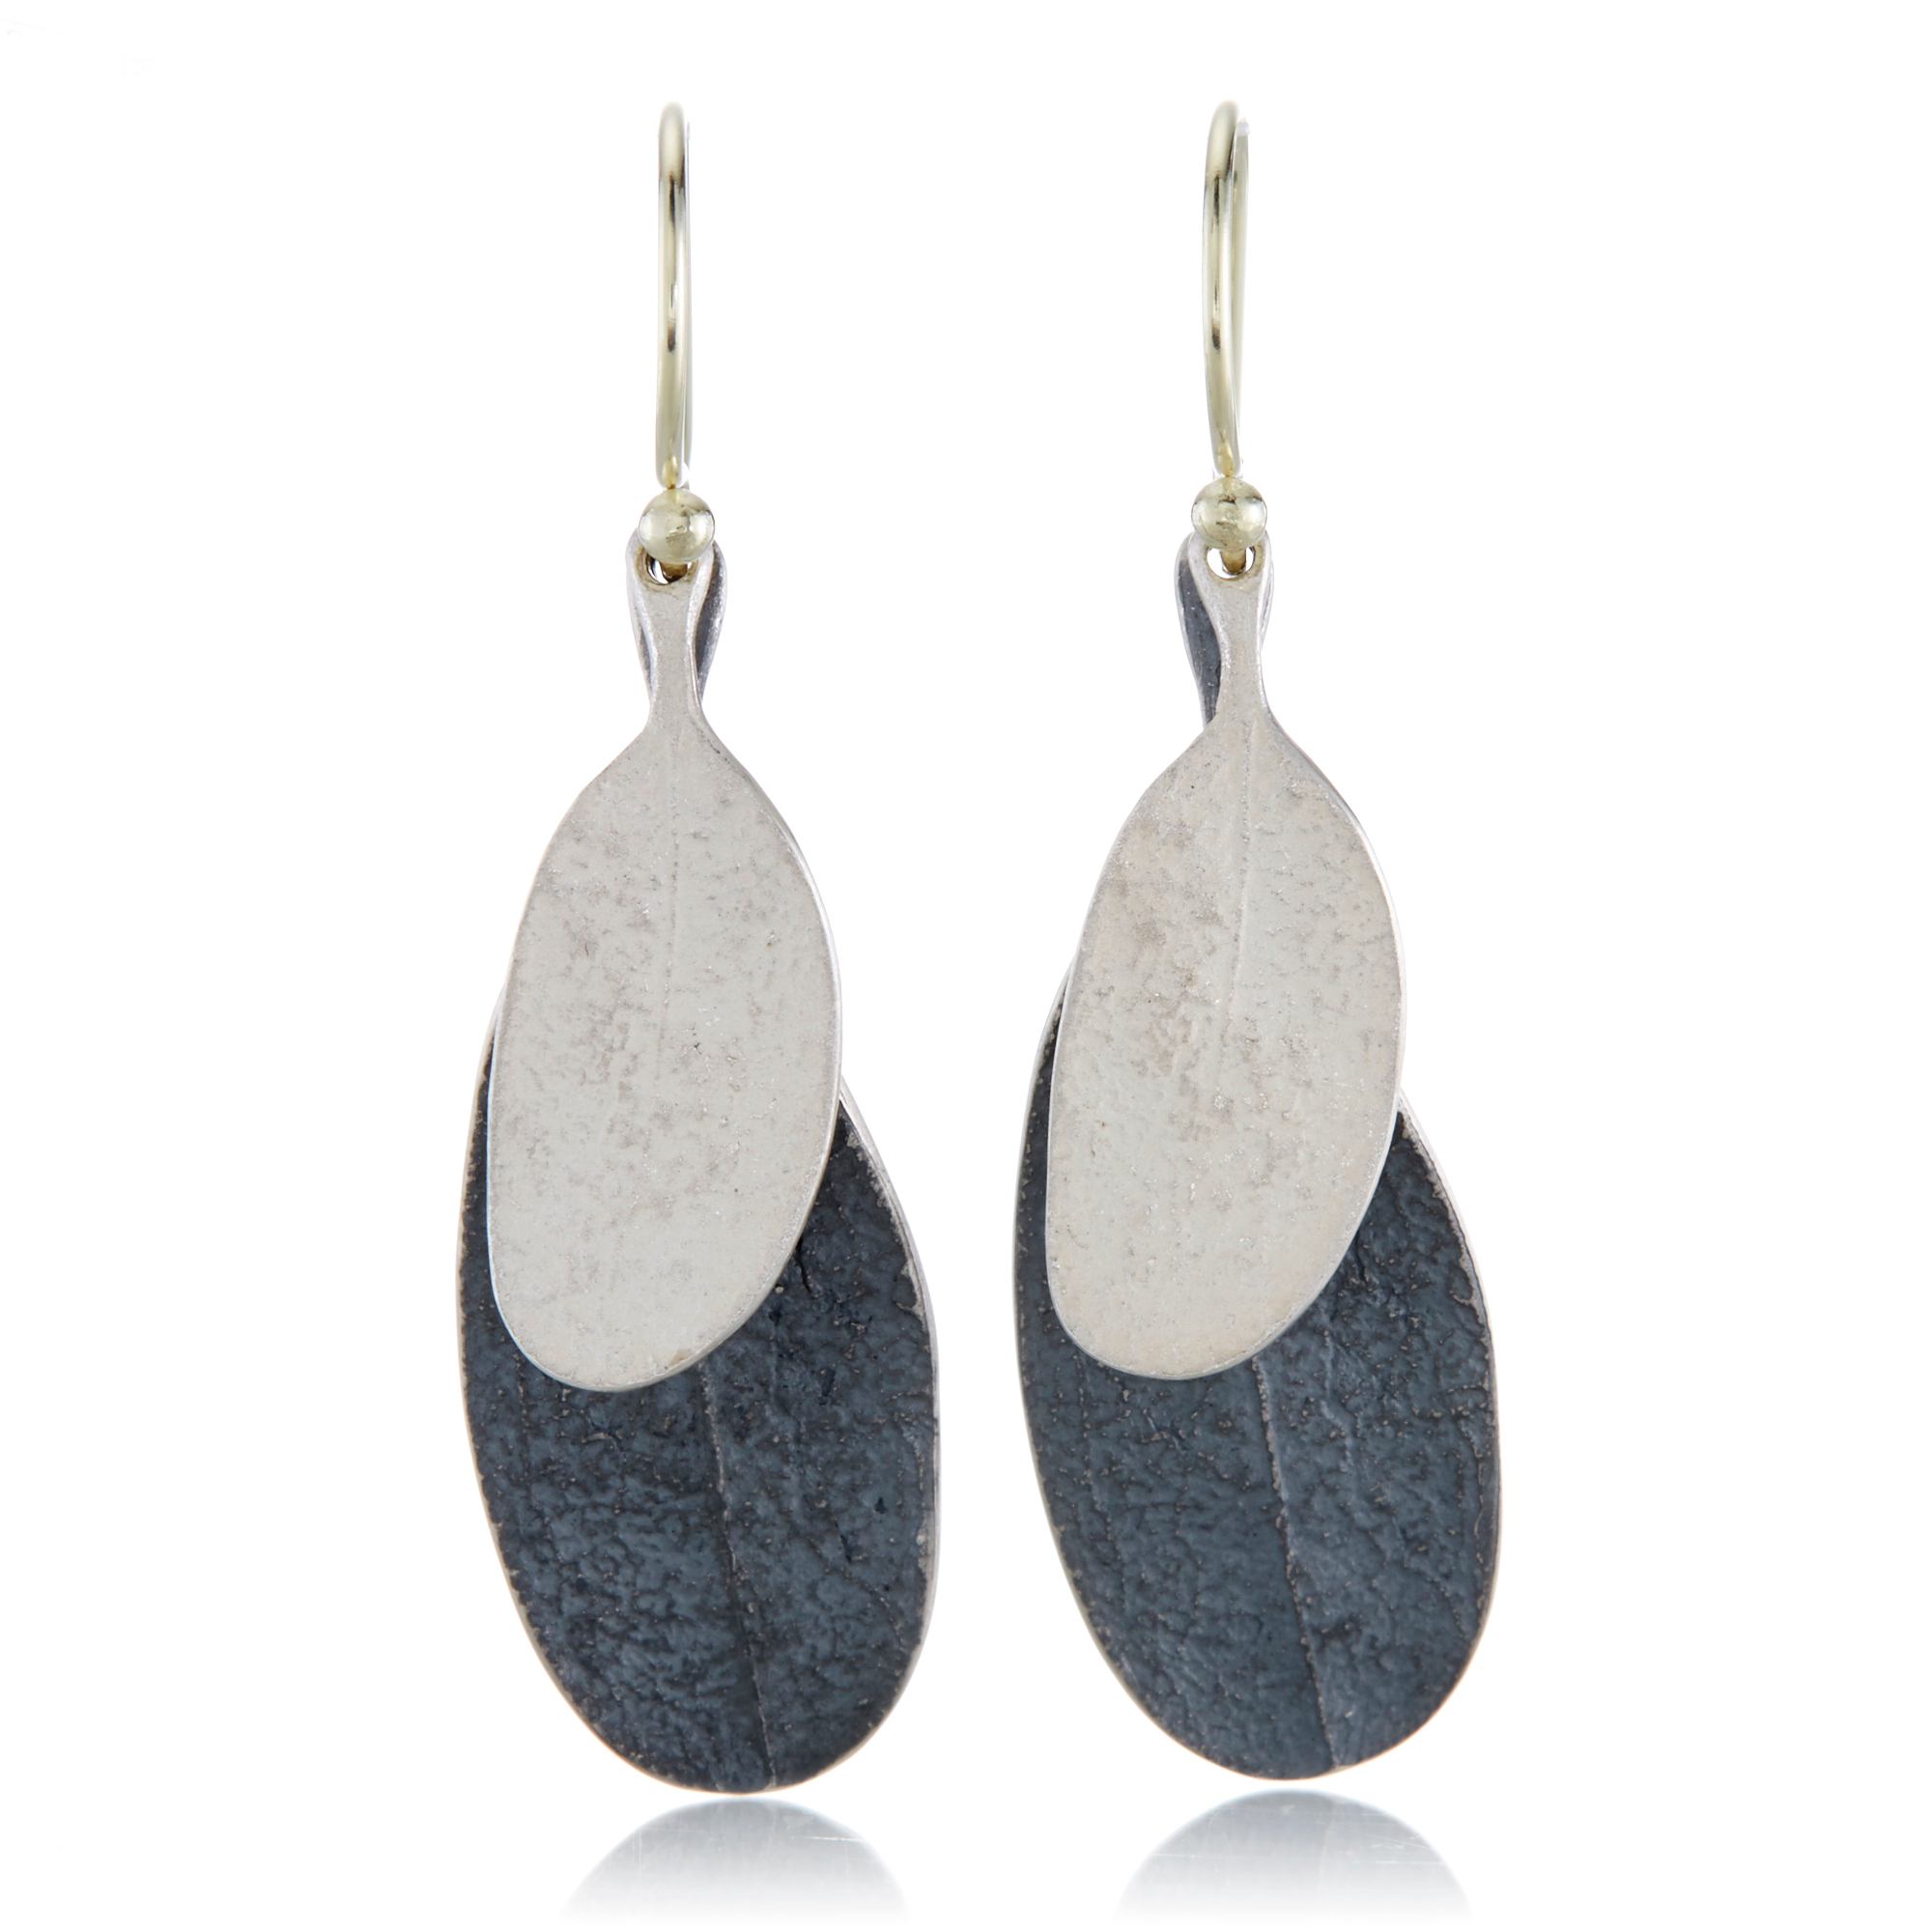 John Iversen Oxidized and White Sterling Silver Duo Leaf Earrings